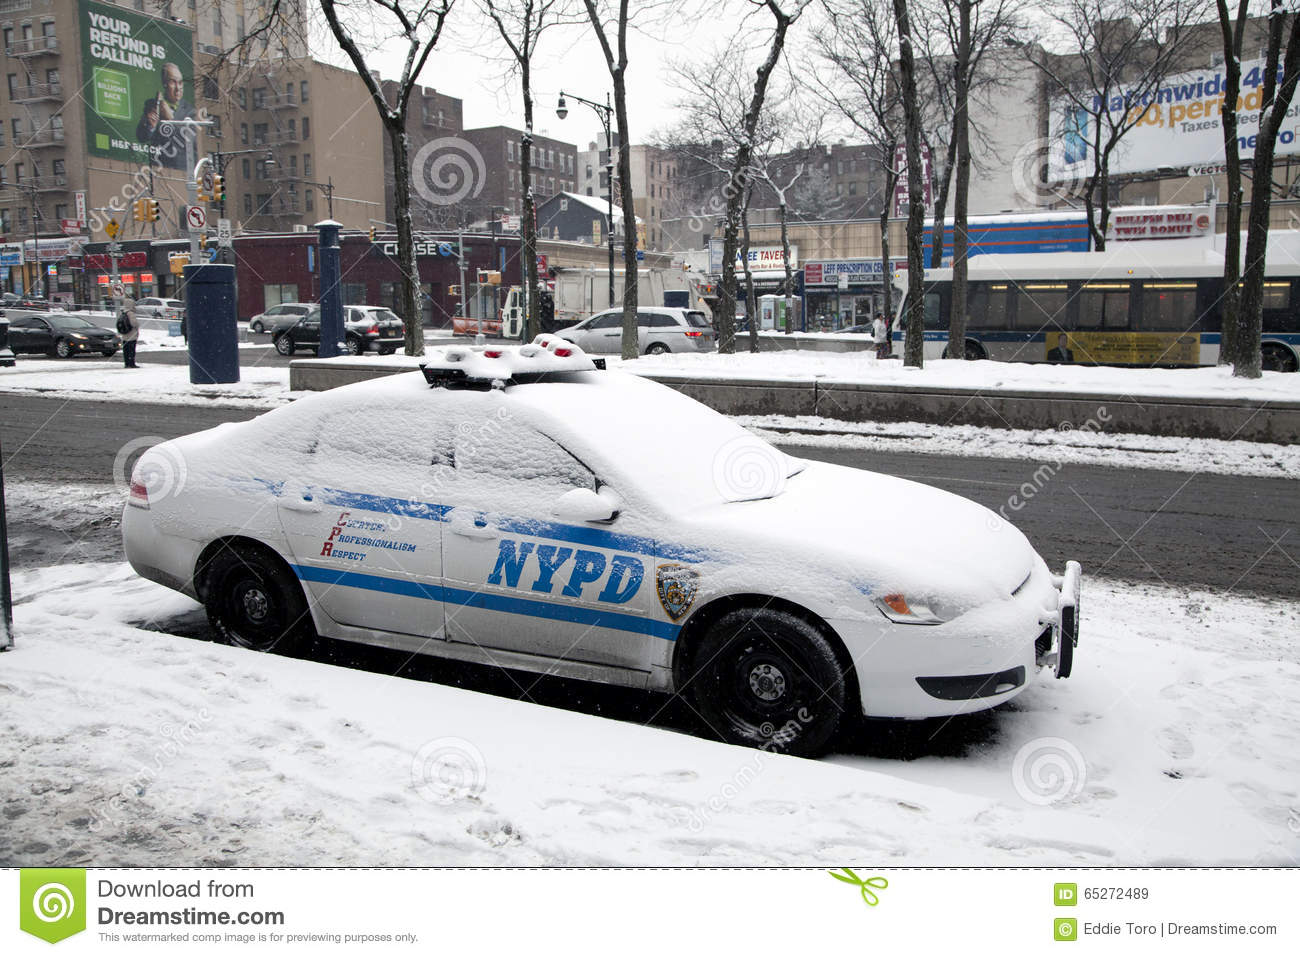 Police car snow clipart svg freeuse library Police car in snow clipart - ClipartFest svg freeuse library